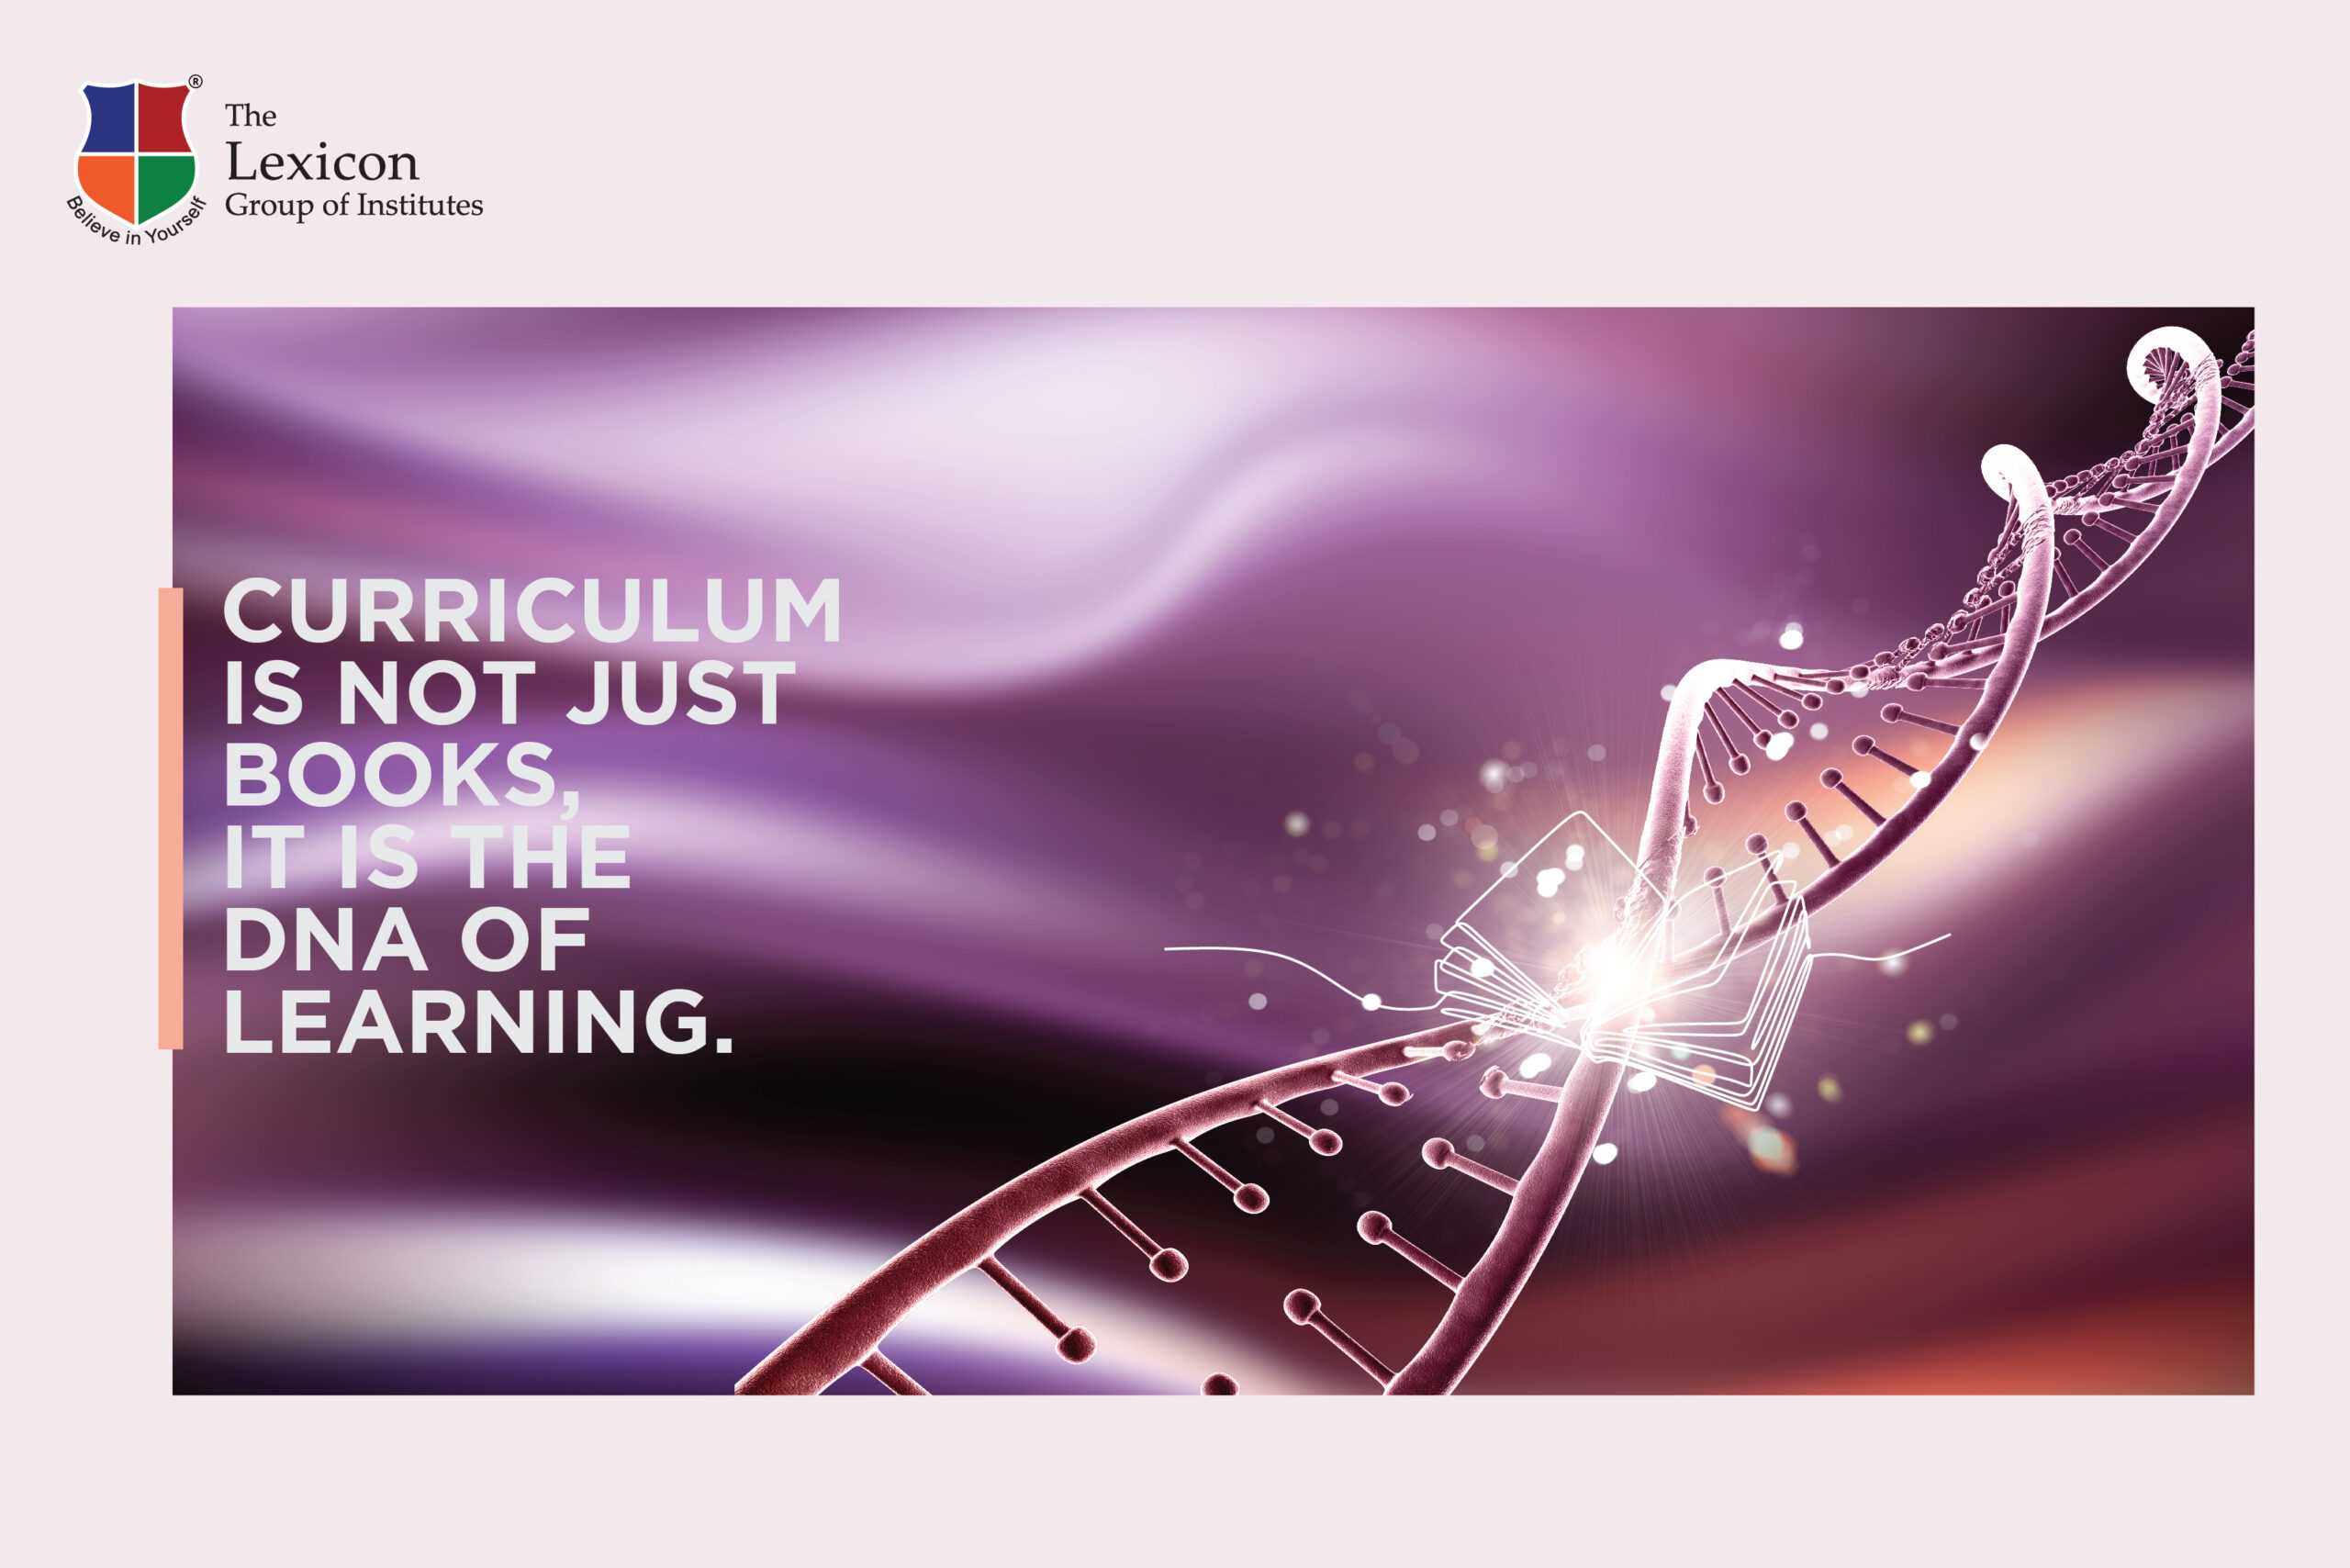 CURRICULUM IS THE DNA OF LEARNING AT LEXICON